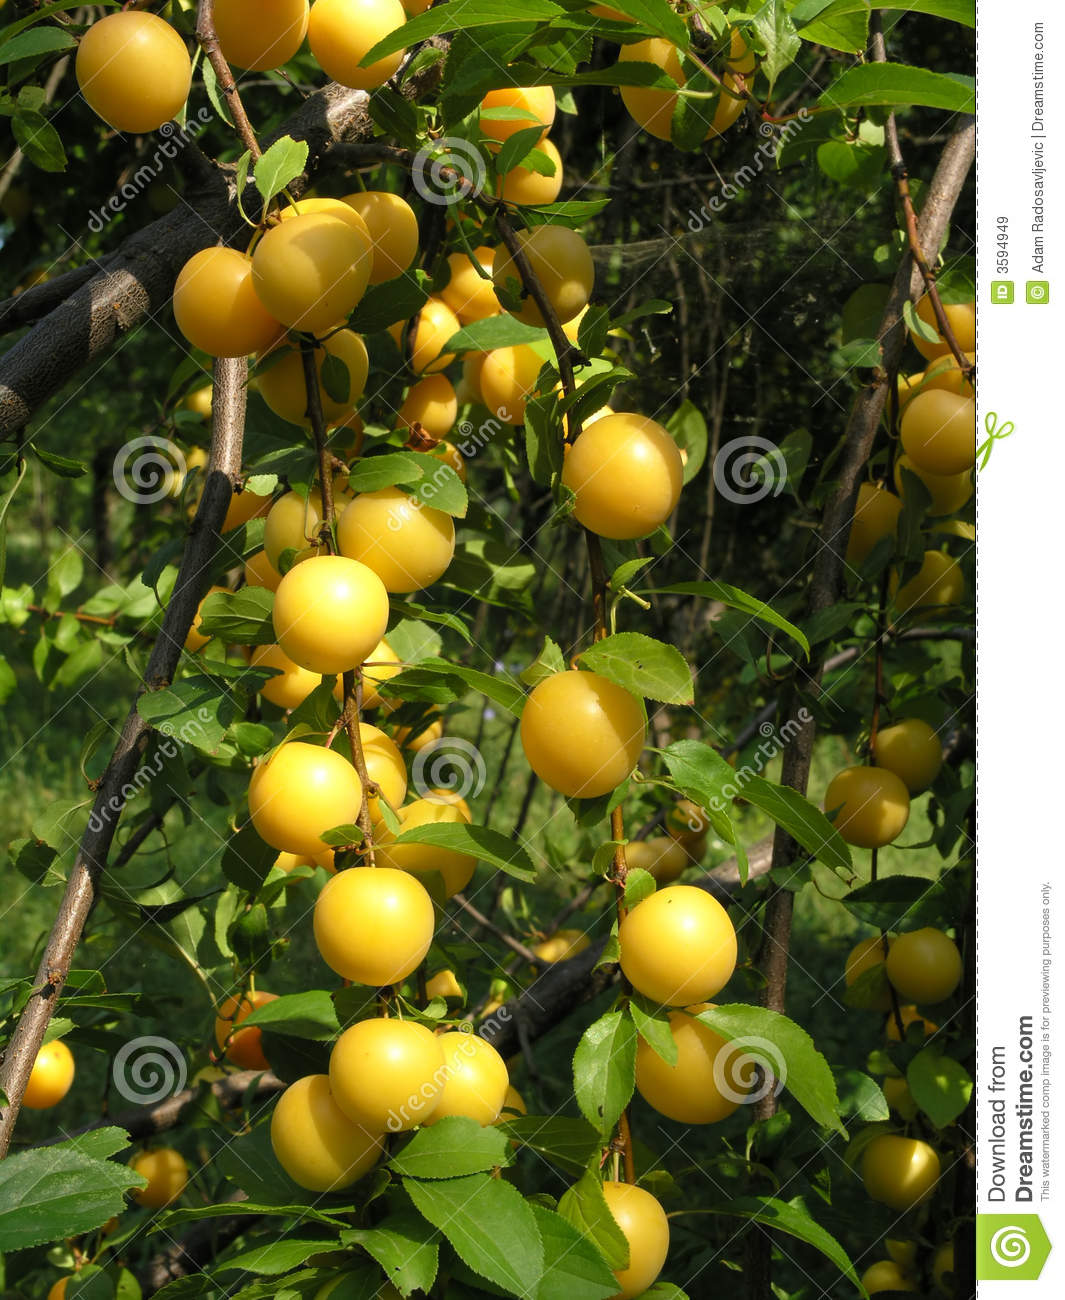 Ripe Fruit On Tree Branches Stock Image - Image: 3594949